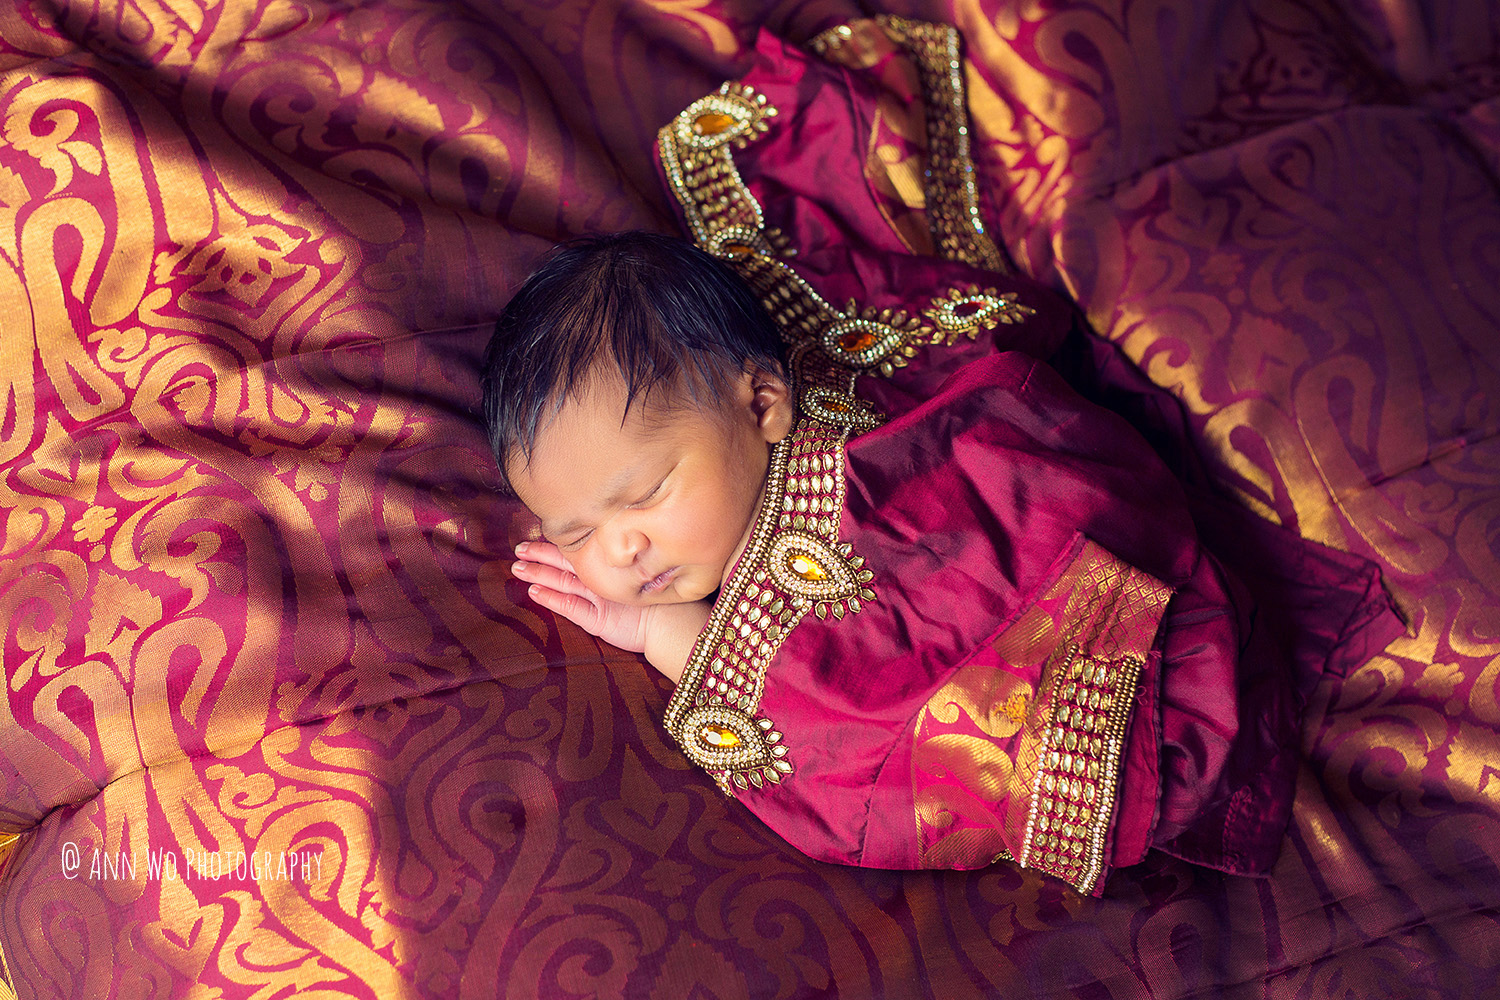 newborn-photography-ann-wo-24nov2013-027.jpg